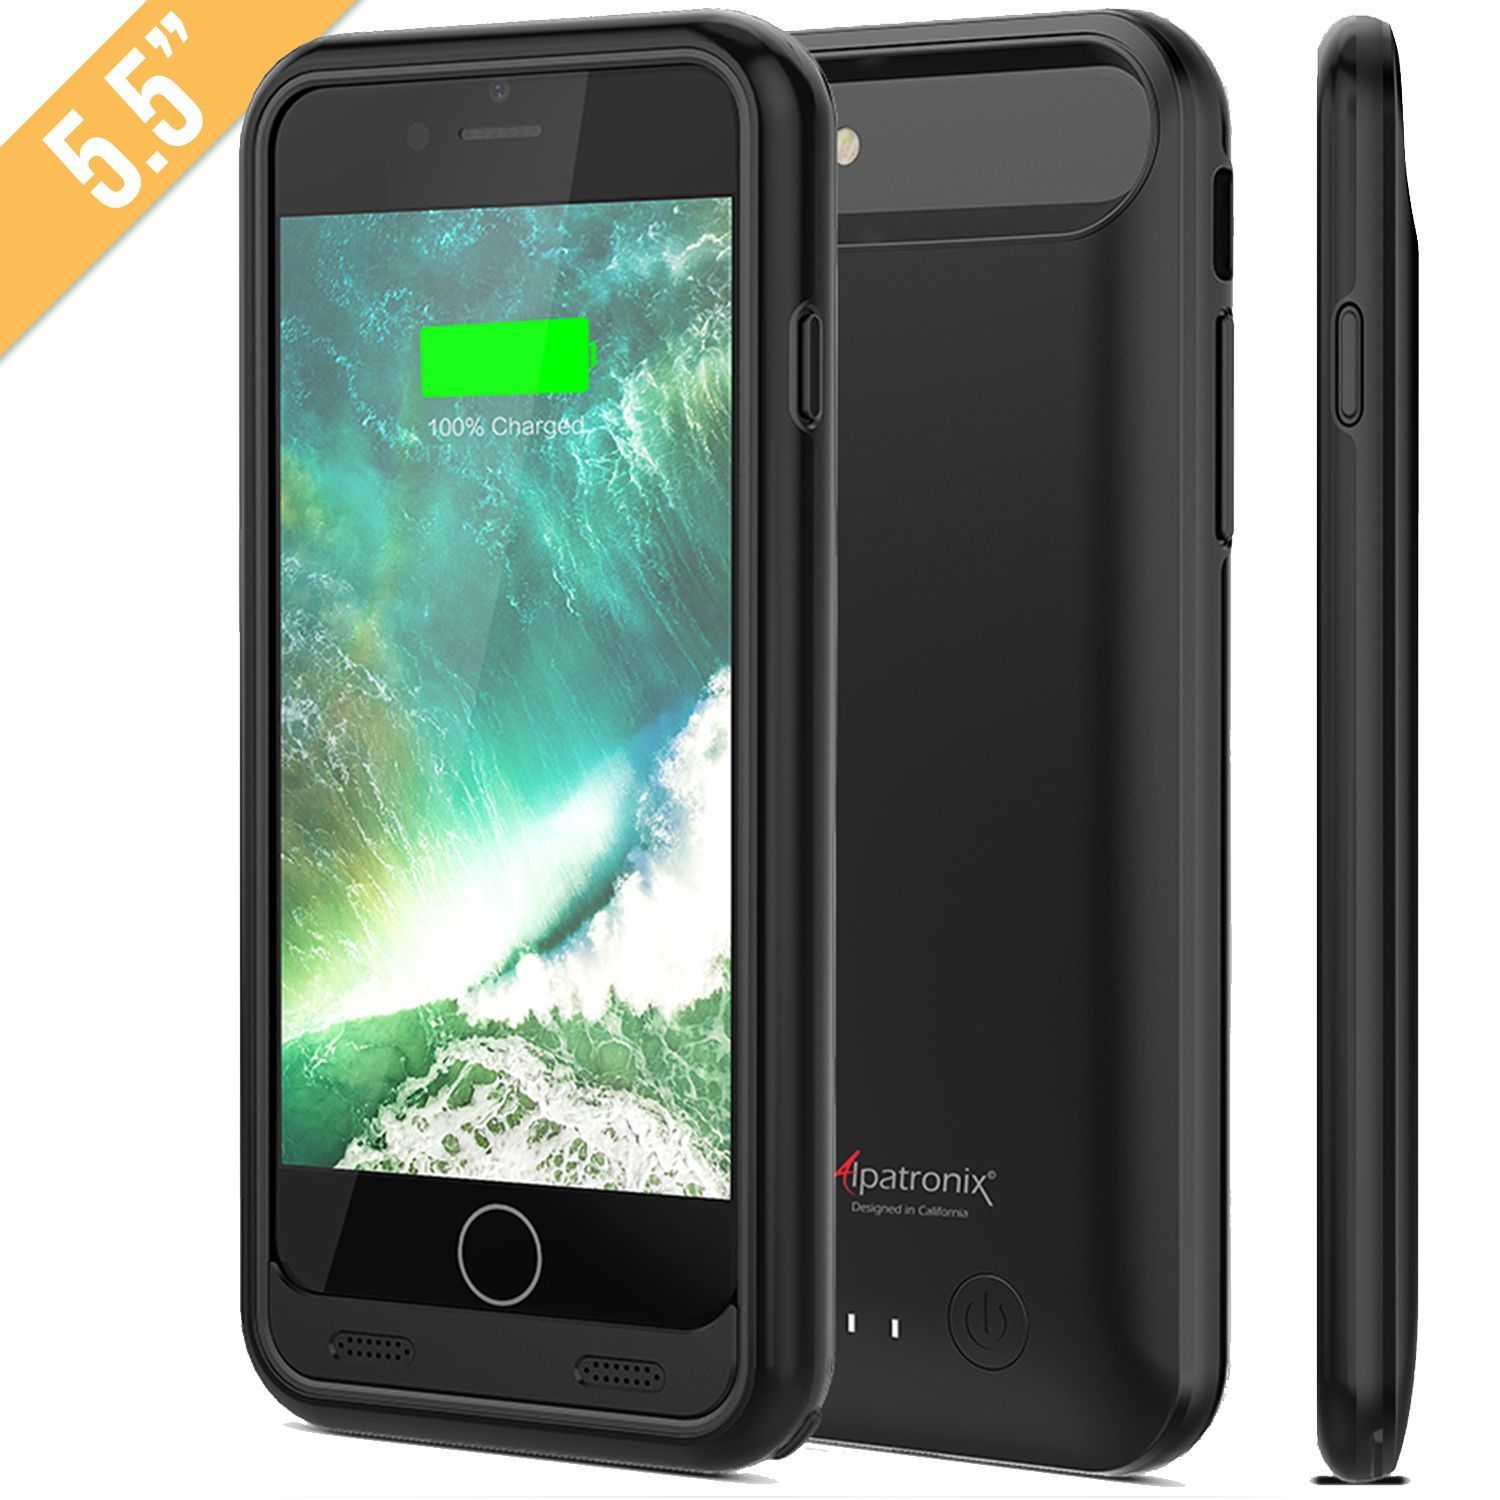 competitive price d3e5d 6468b iPhone 7 Plus battery case 4000mAh Ultra-Slim Removable 150% charge ...